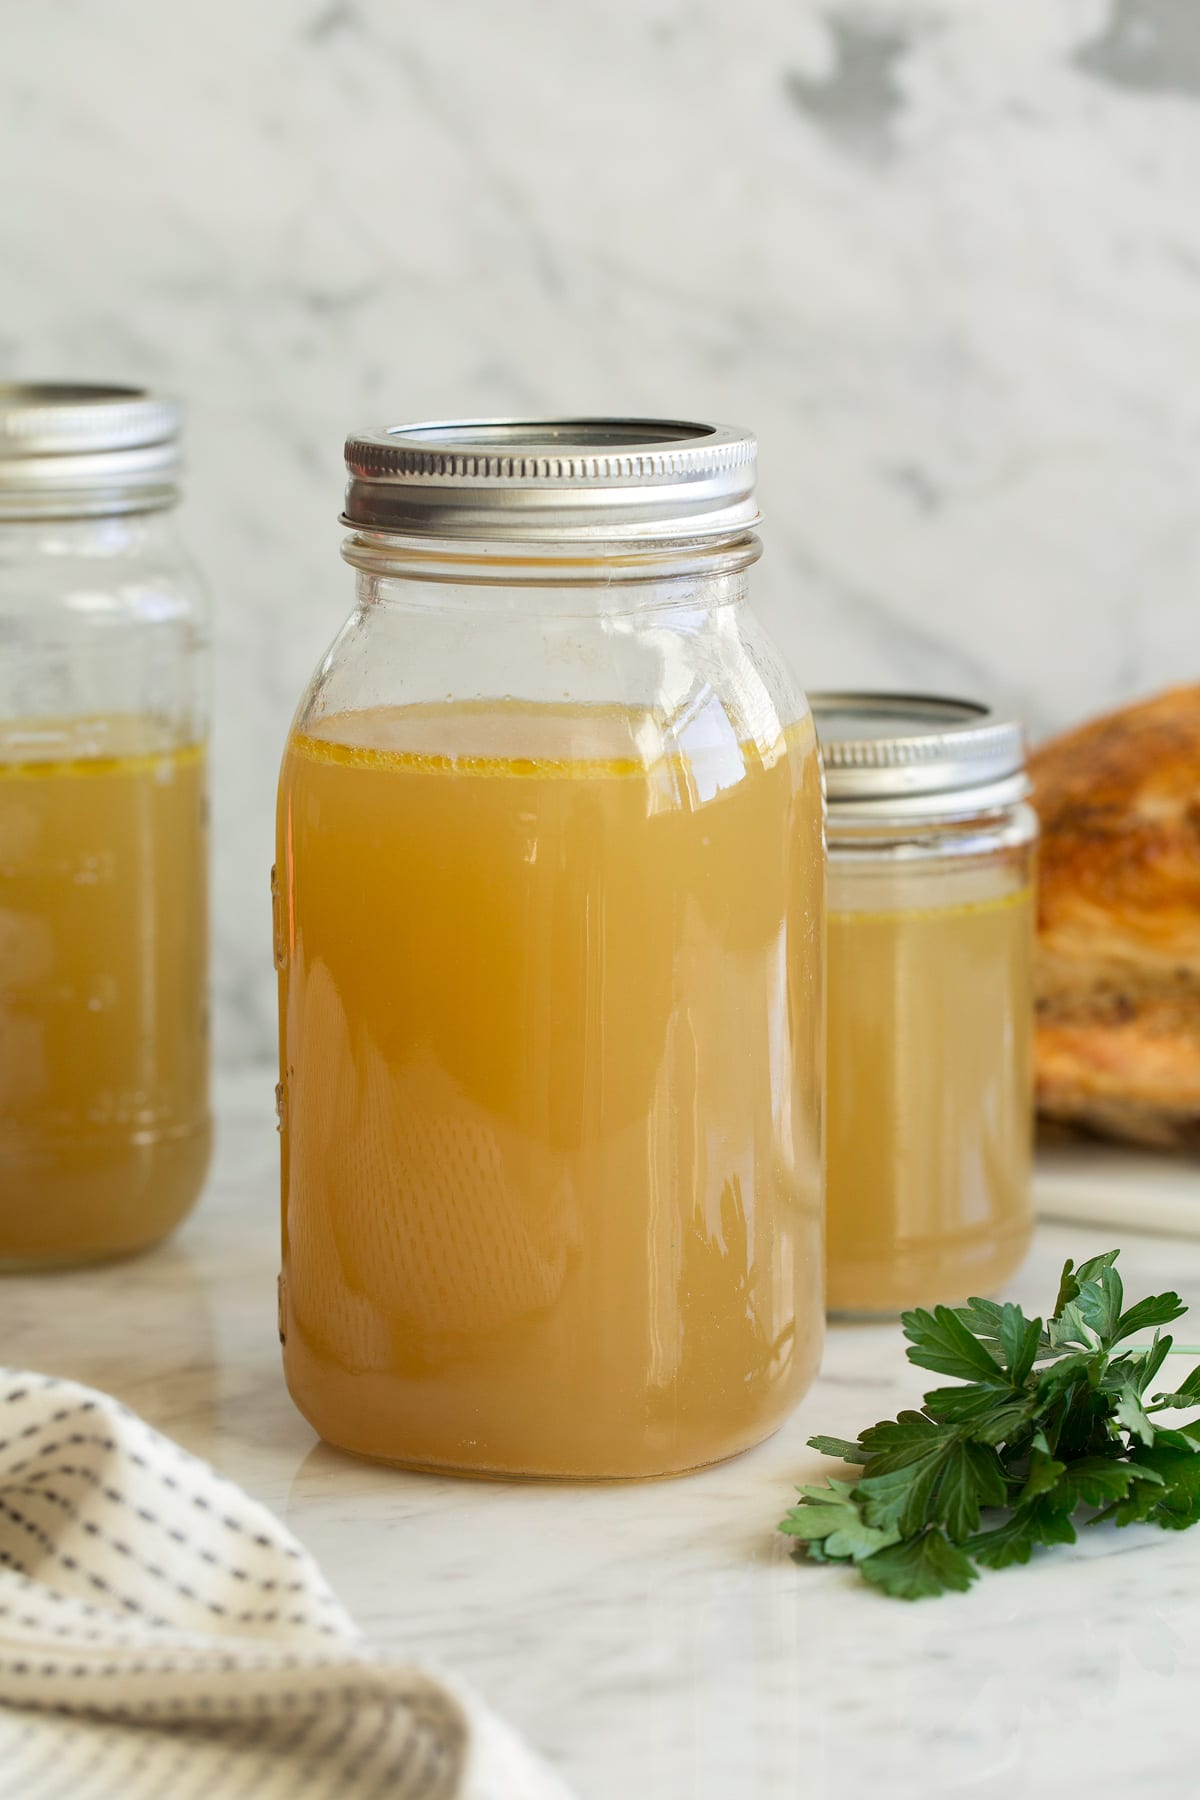 Homemade Chicken Stock in storage jars.